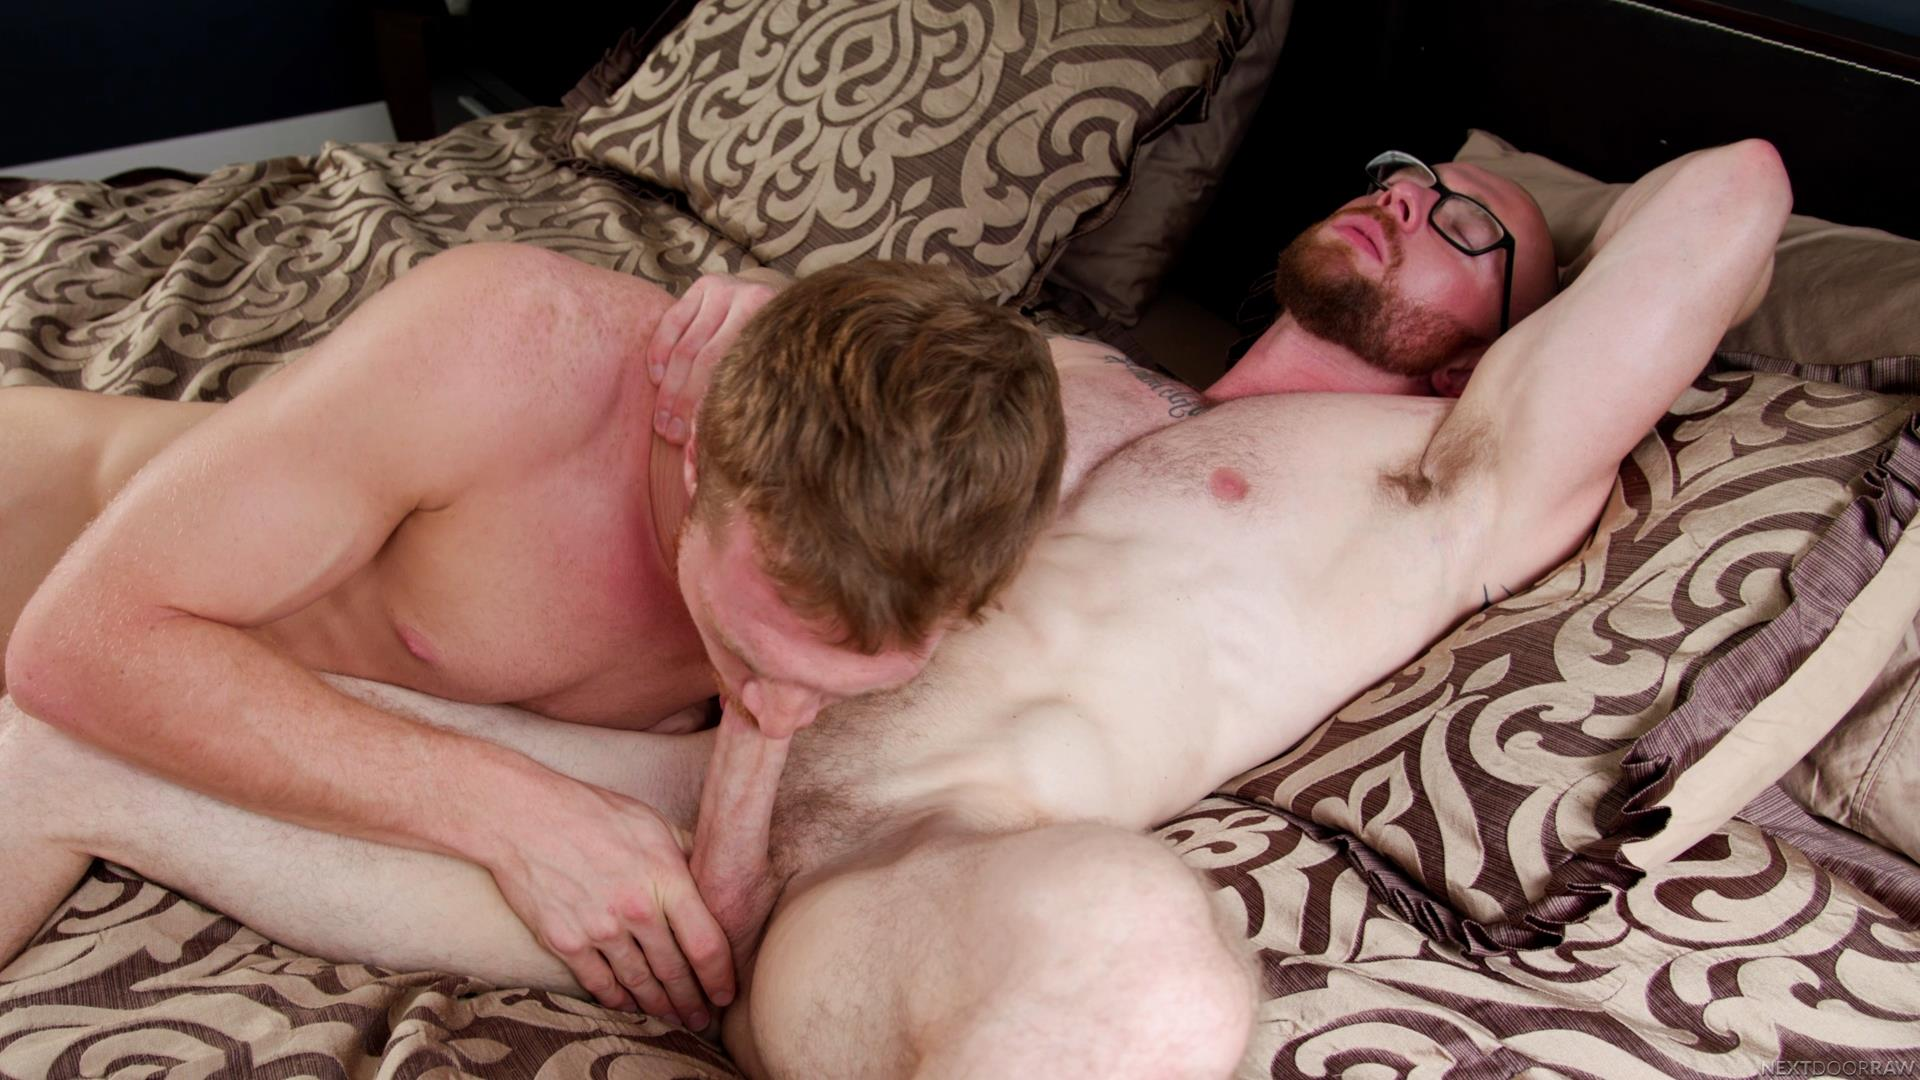 Next-Door-Raw-Markie-More-and-Dacotah-Red-Big-Dick-gingers-fucking-bareback-08 Ginger Boyfriends Markie More and Dacotah Red Share A Bareback Fuck